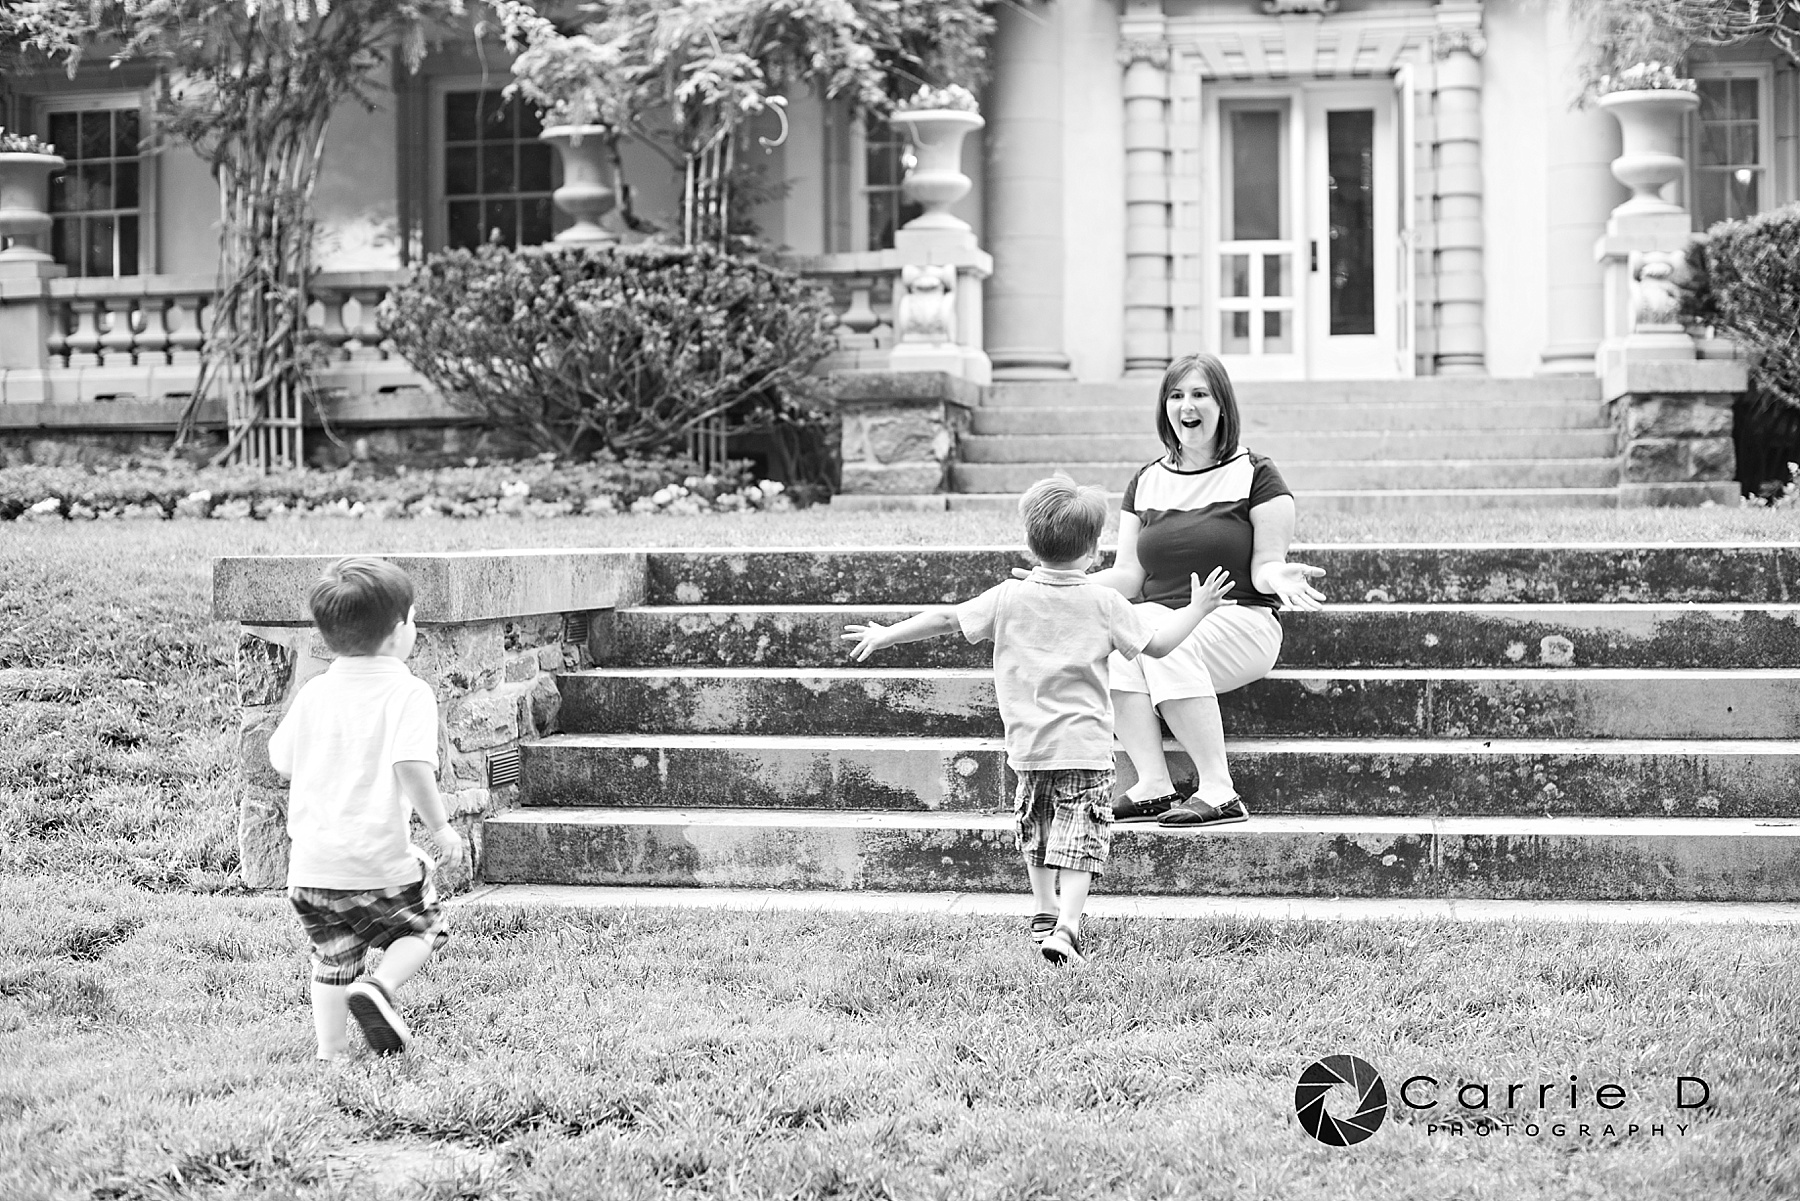 Harford County Photographer – Harford County Portrait Photographer – Harford County Family Photographer – Harford County Child Photographer – Harford County Sibling Photographer – Harford County Natural Light Photographer – Harford County Lifestyle Photographer – Harford County Natural Light Portrait Photographer - Maryland Photographer – Maryland Portrait Photographer – Maryland Family Photographer – Maryland Child Photographer – Maryland Sibling Photographer – Maryland Natural Light Photographer – Maryland Lifestyle Photographer – Maryland Natural Light Portrait Photographer - 2014-06-09_0018